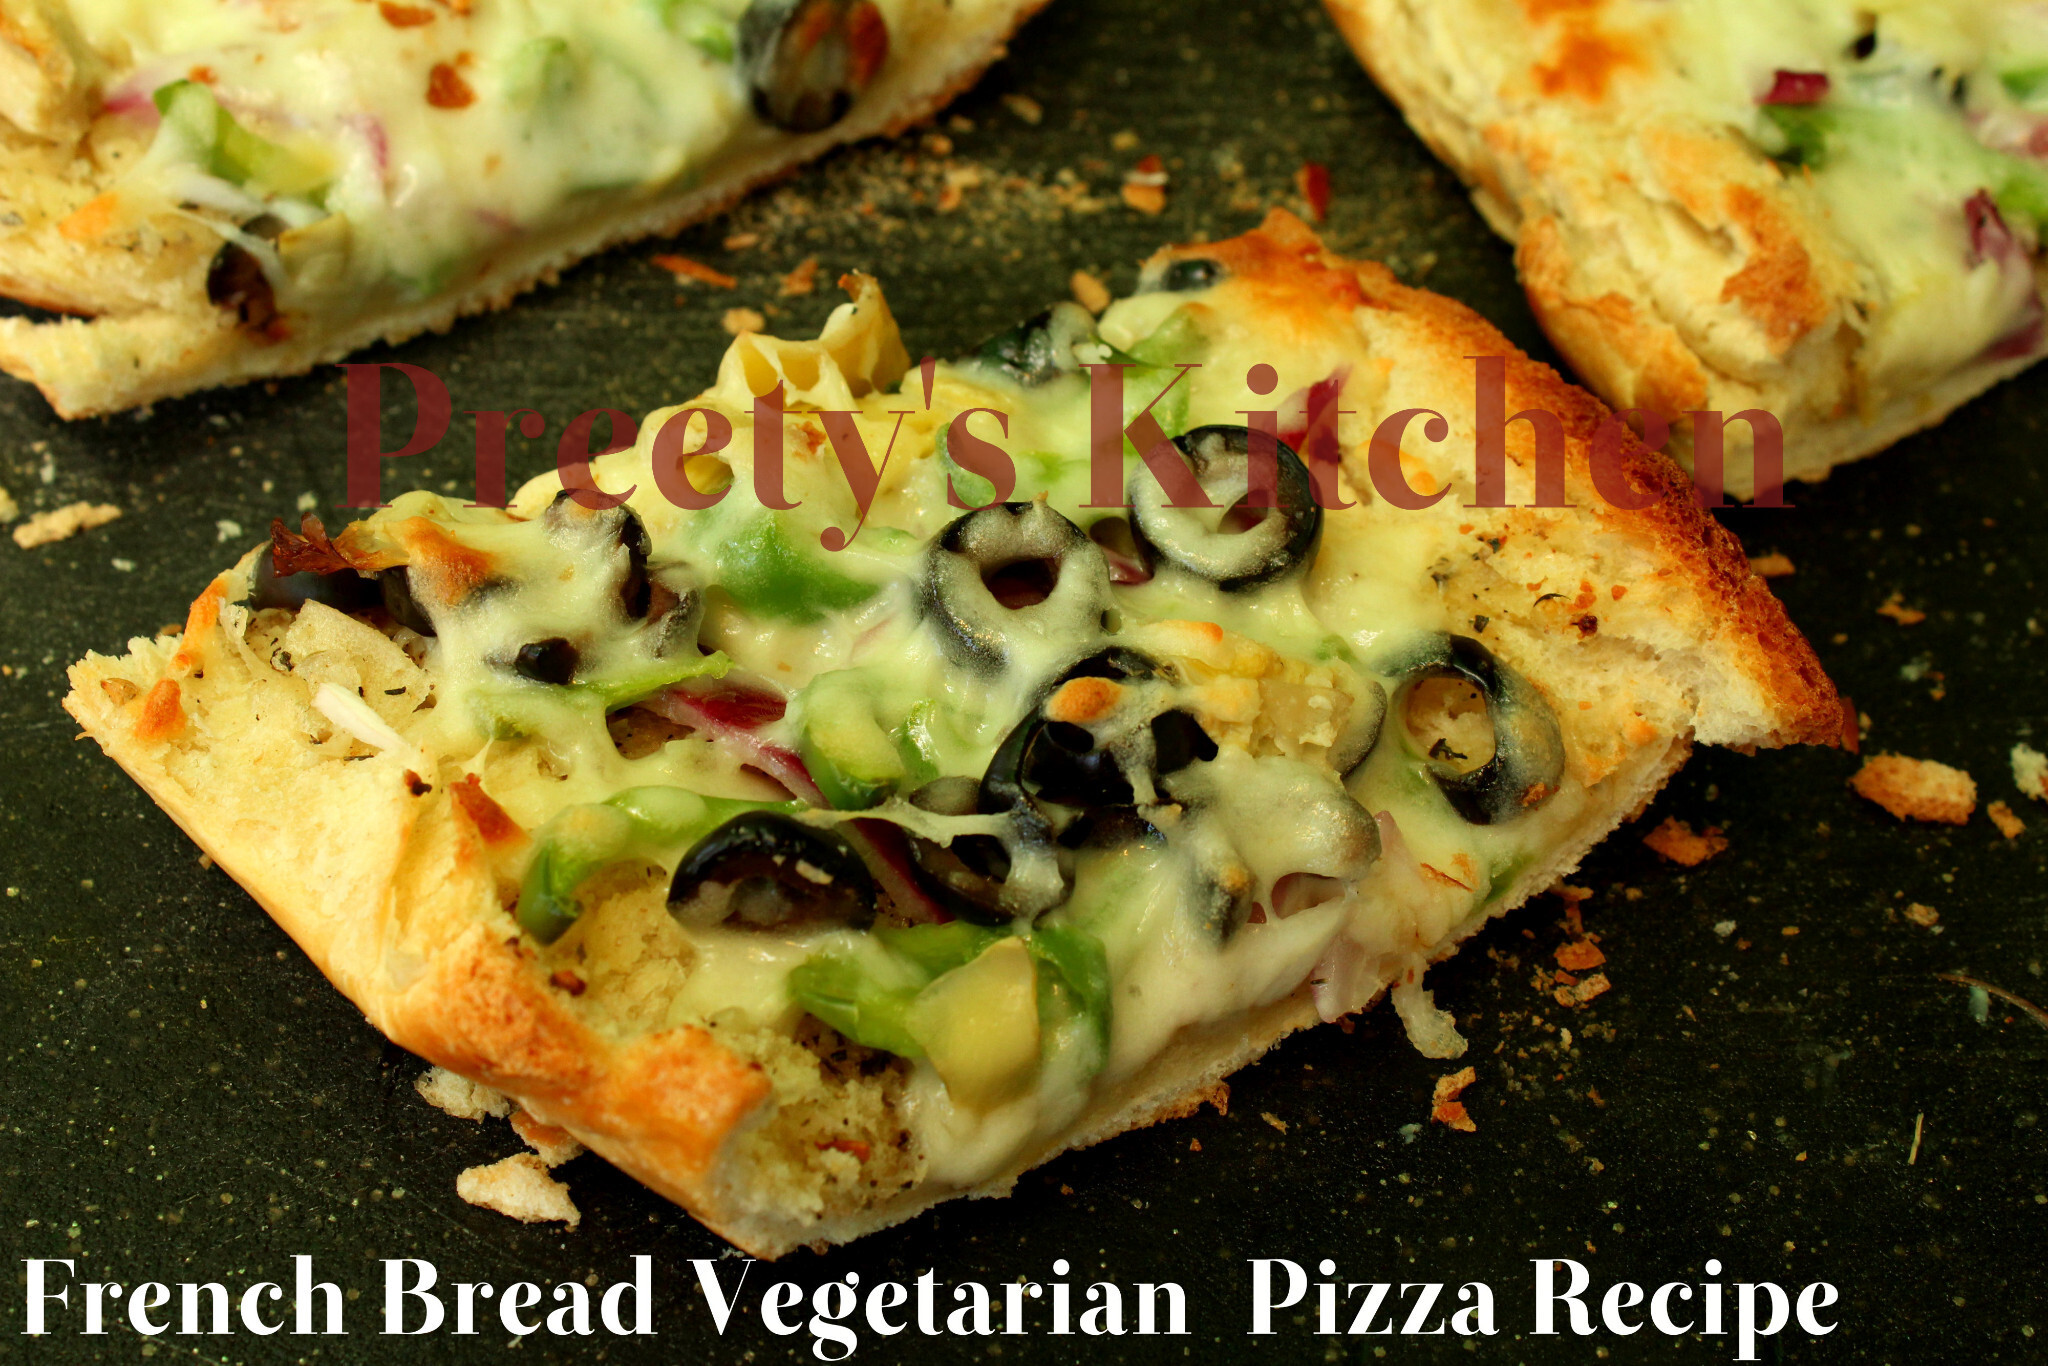 French Bread Vegetarian  Pizza Recipe ( Step By Step Pictures)